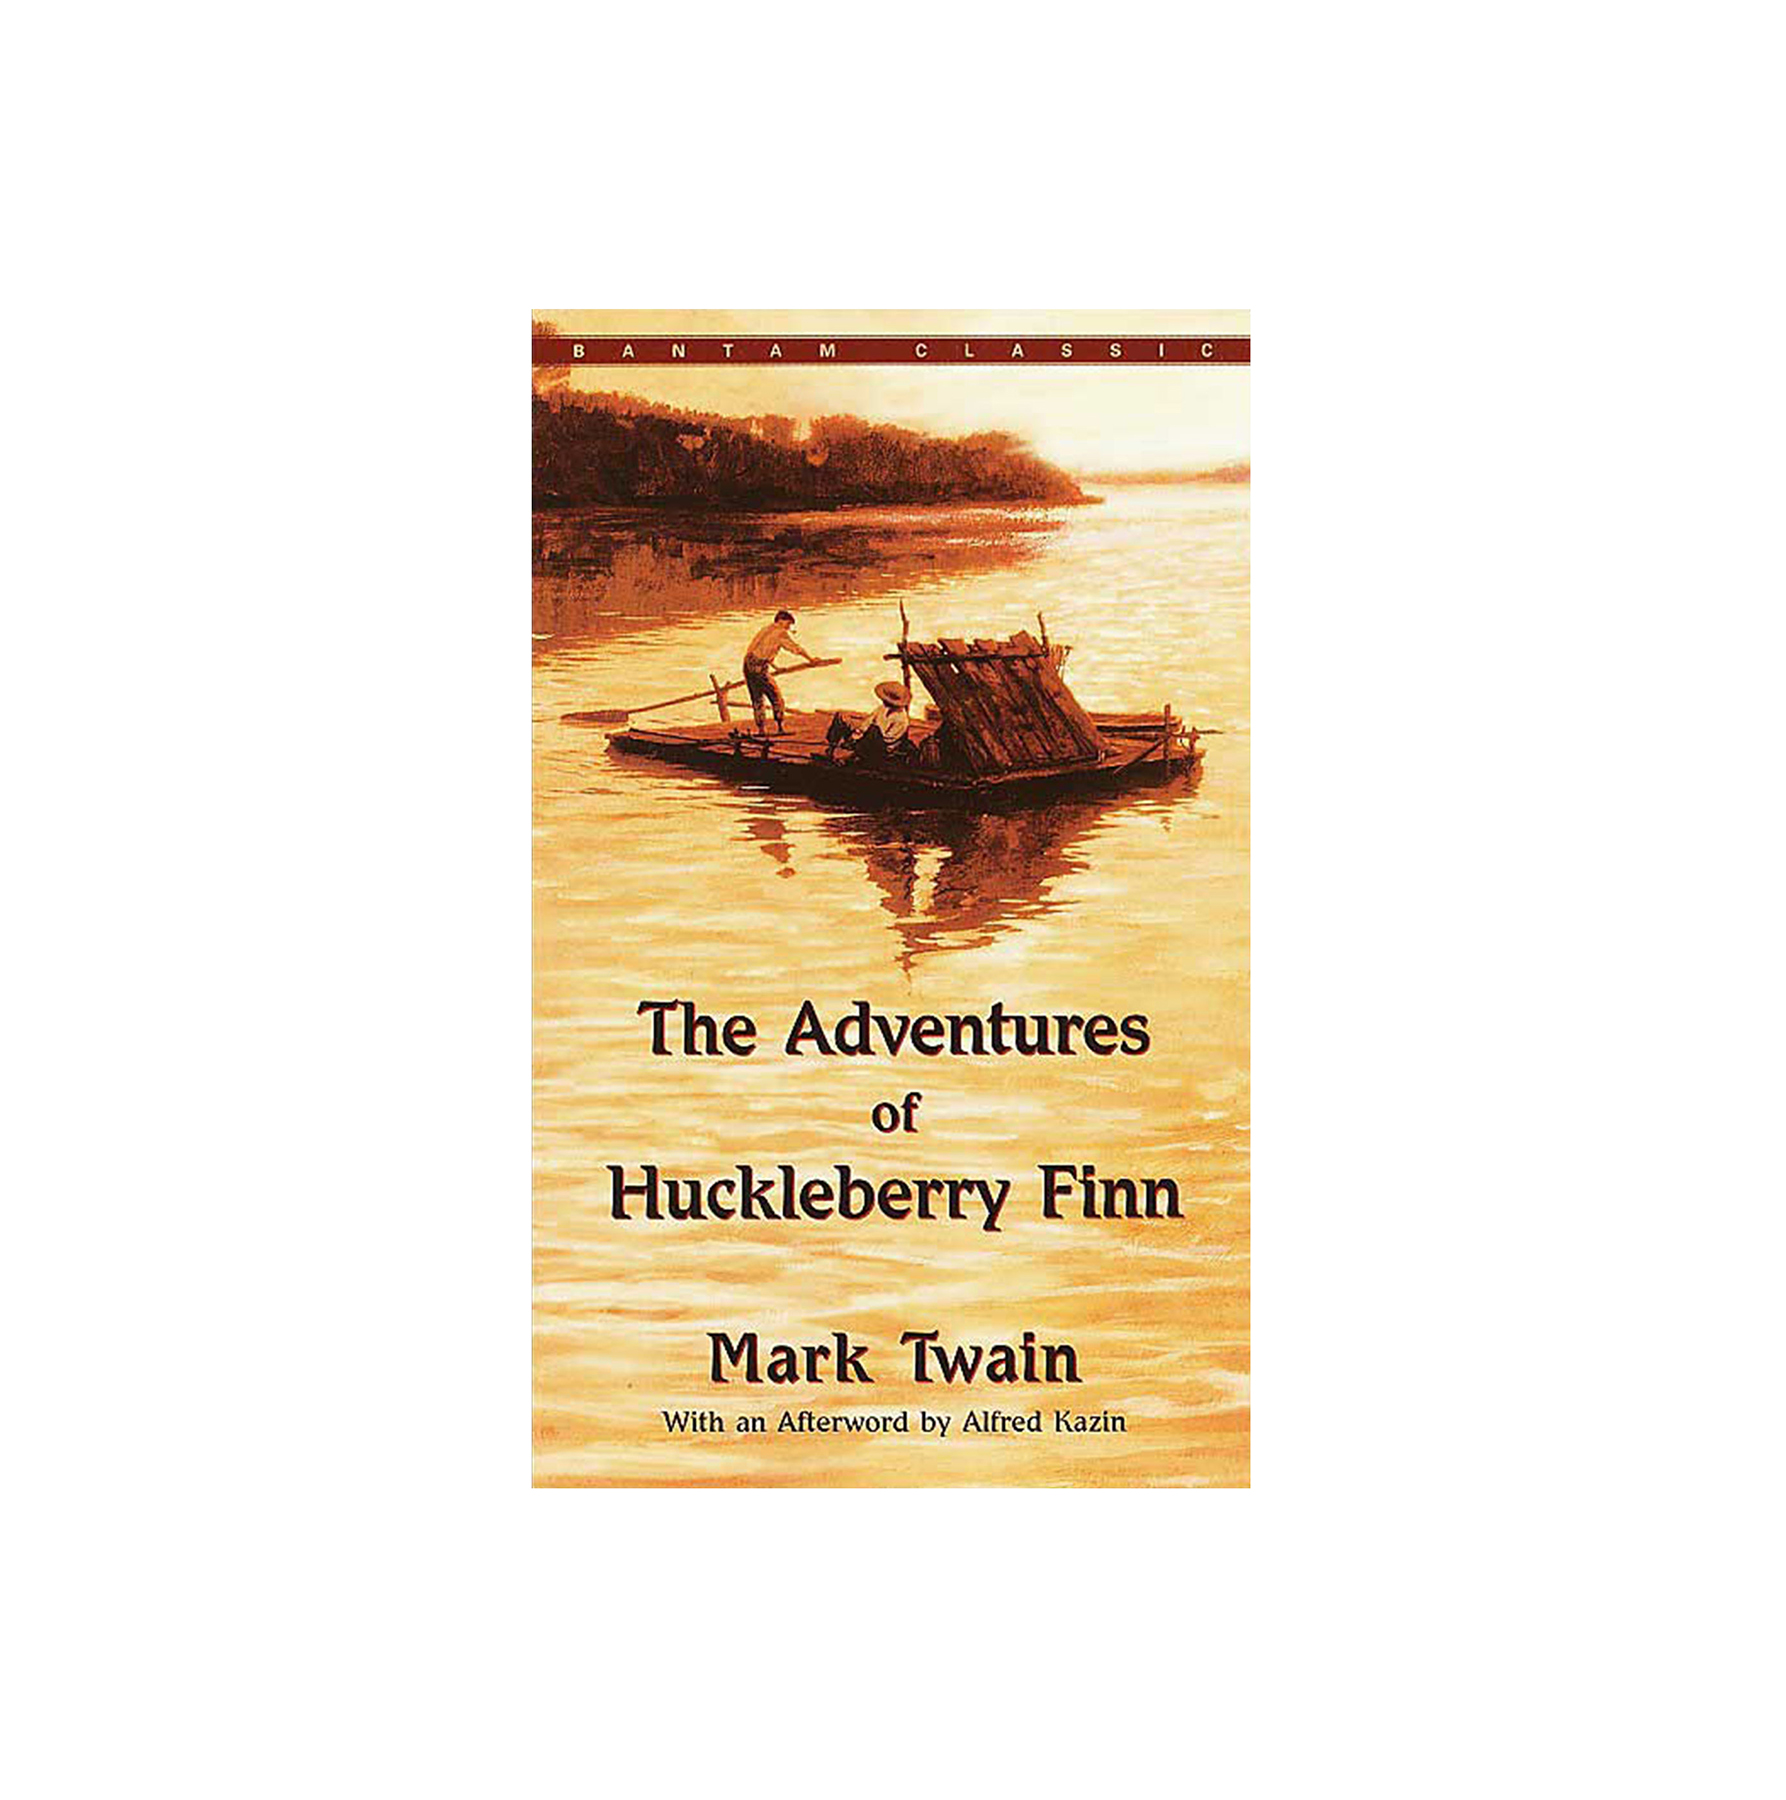 The Adventures of Huckleberry Finn, by Mark Twain  (BRIDGE BOOKS)